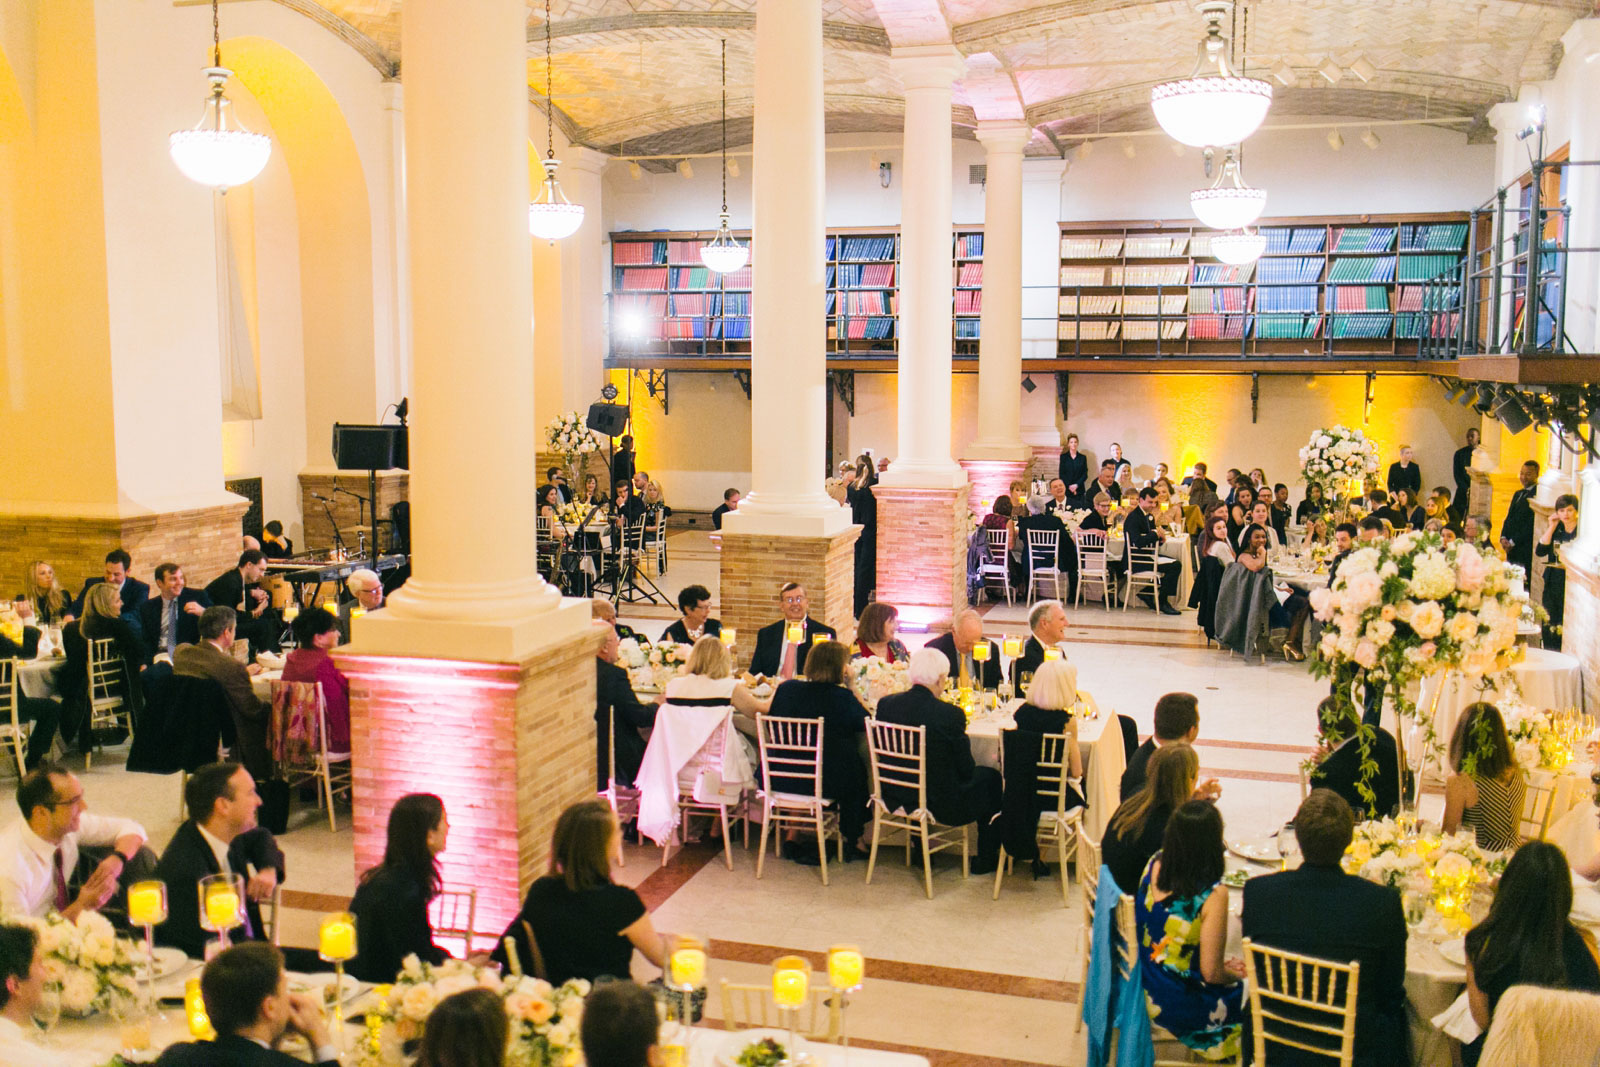 Guests listen to toasts during wedding reception at Guastavino room in Boston public library